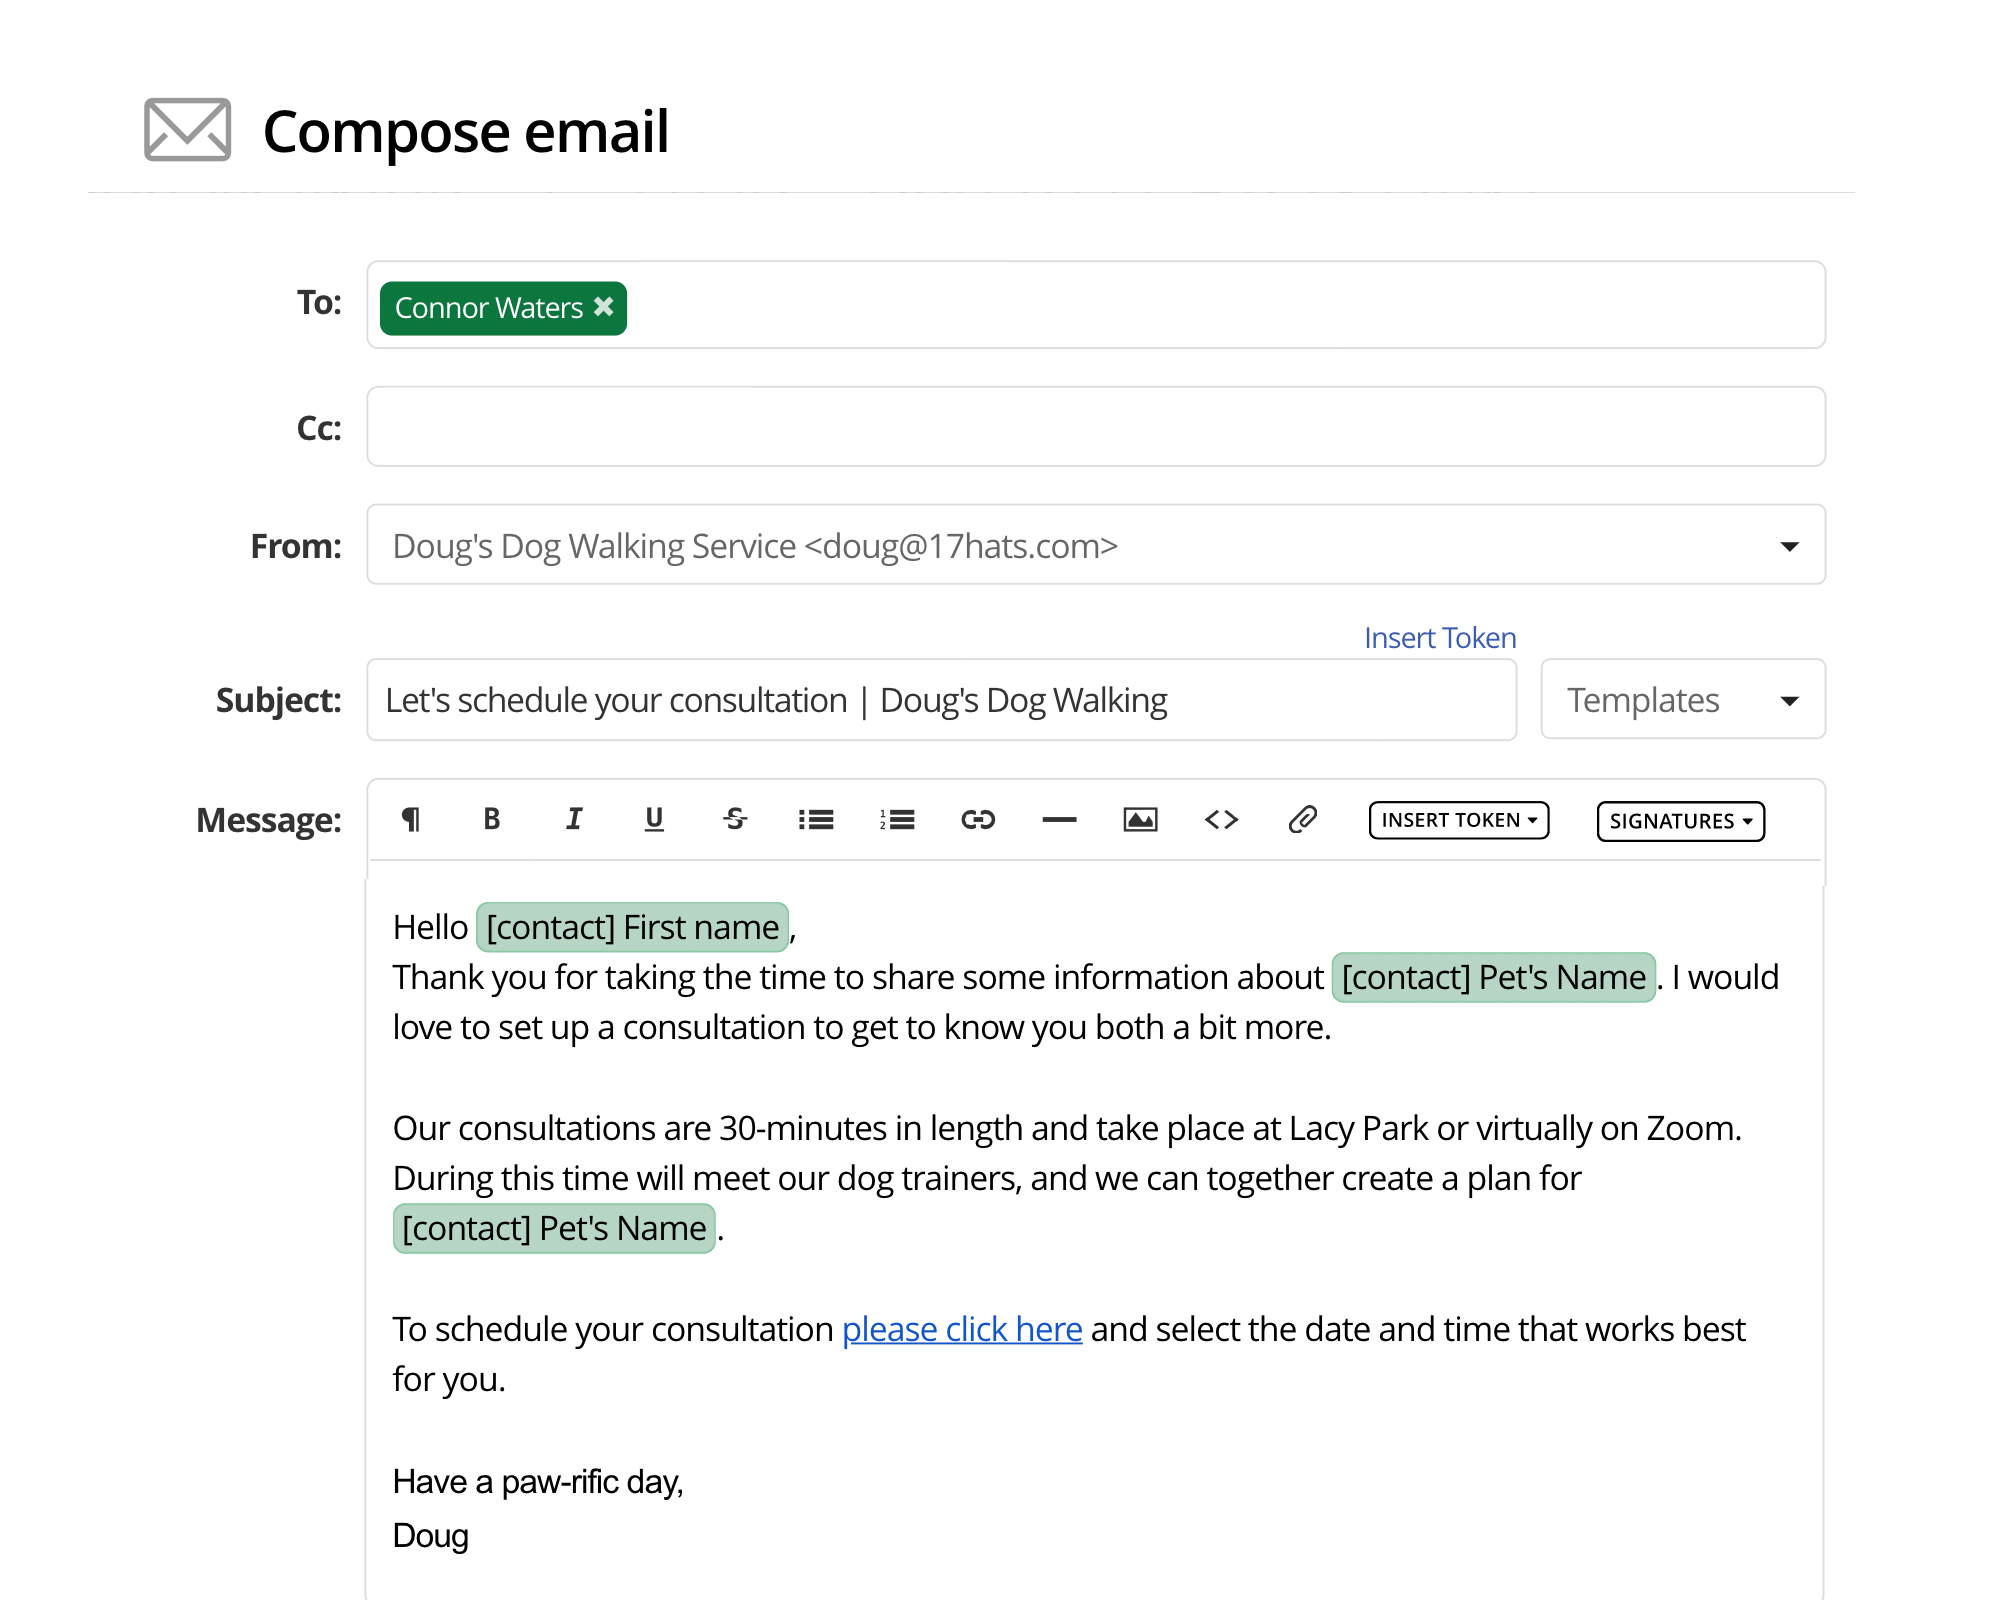 Sending an email in 17hats